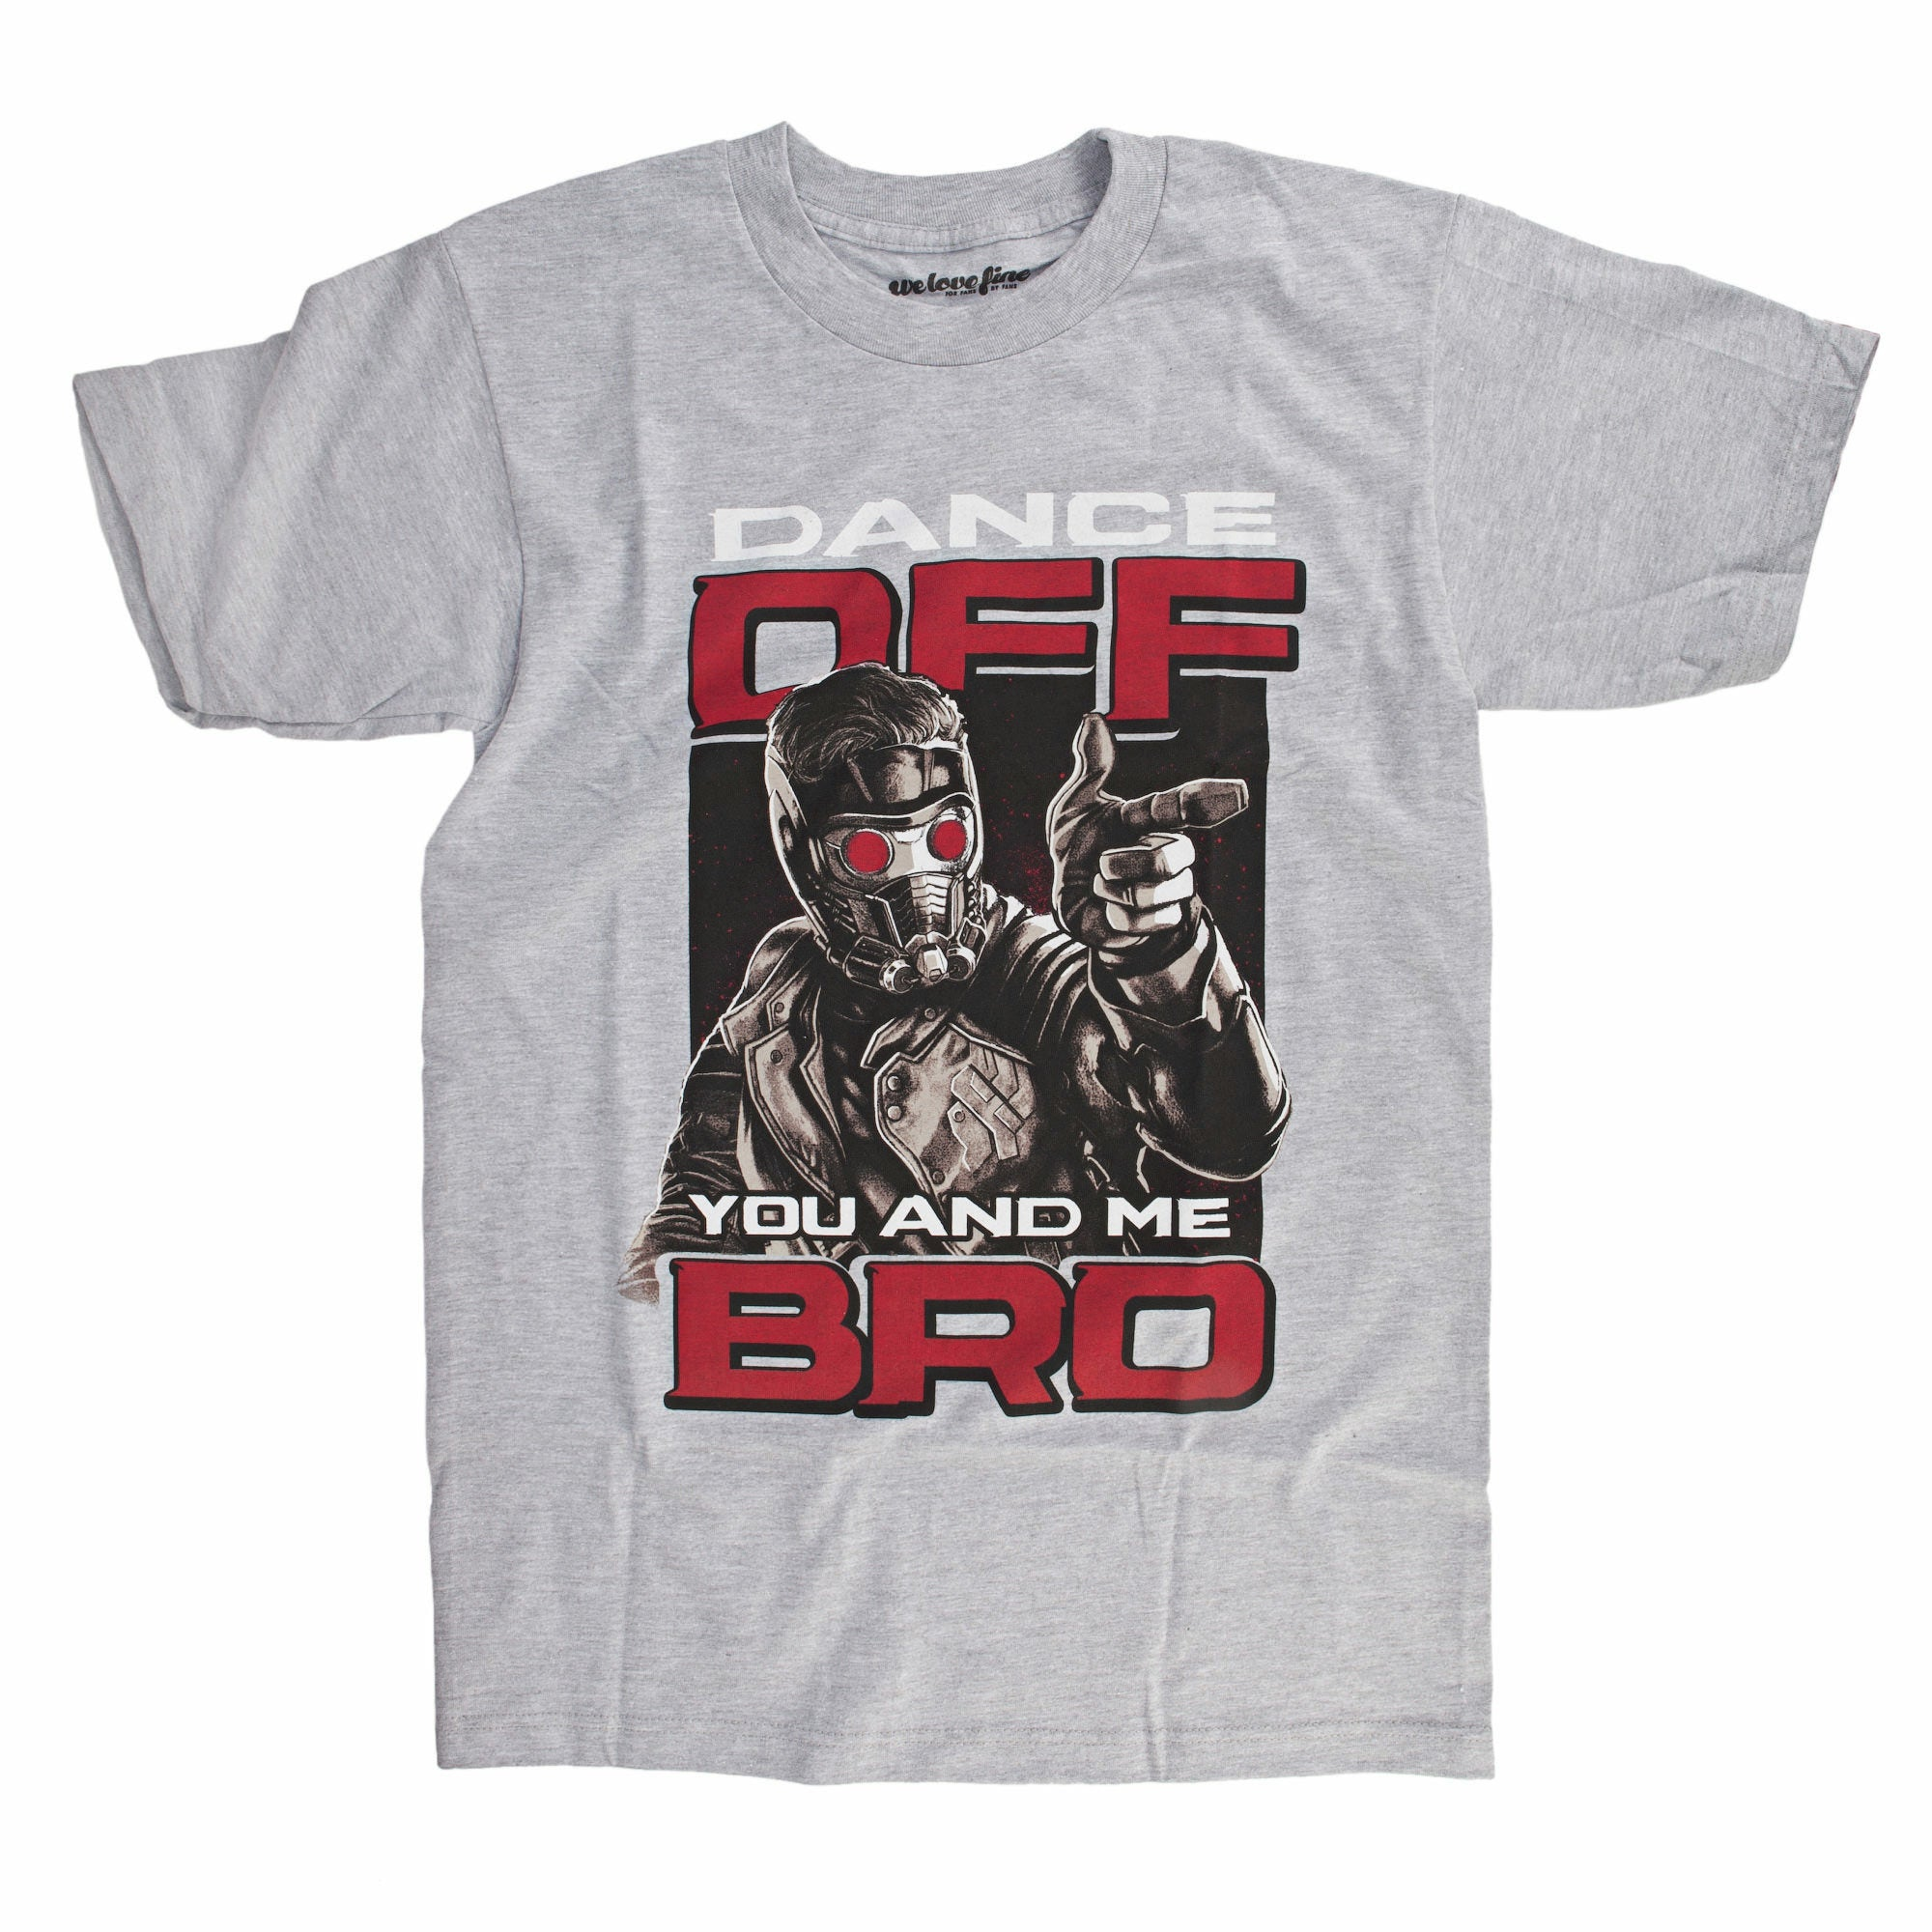 Guardians Of The Galaxy Star Lord Dance Off Mens Grey T-Shirt